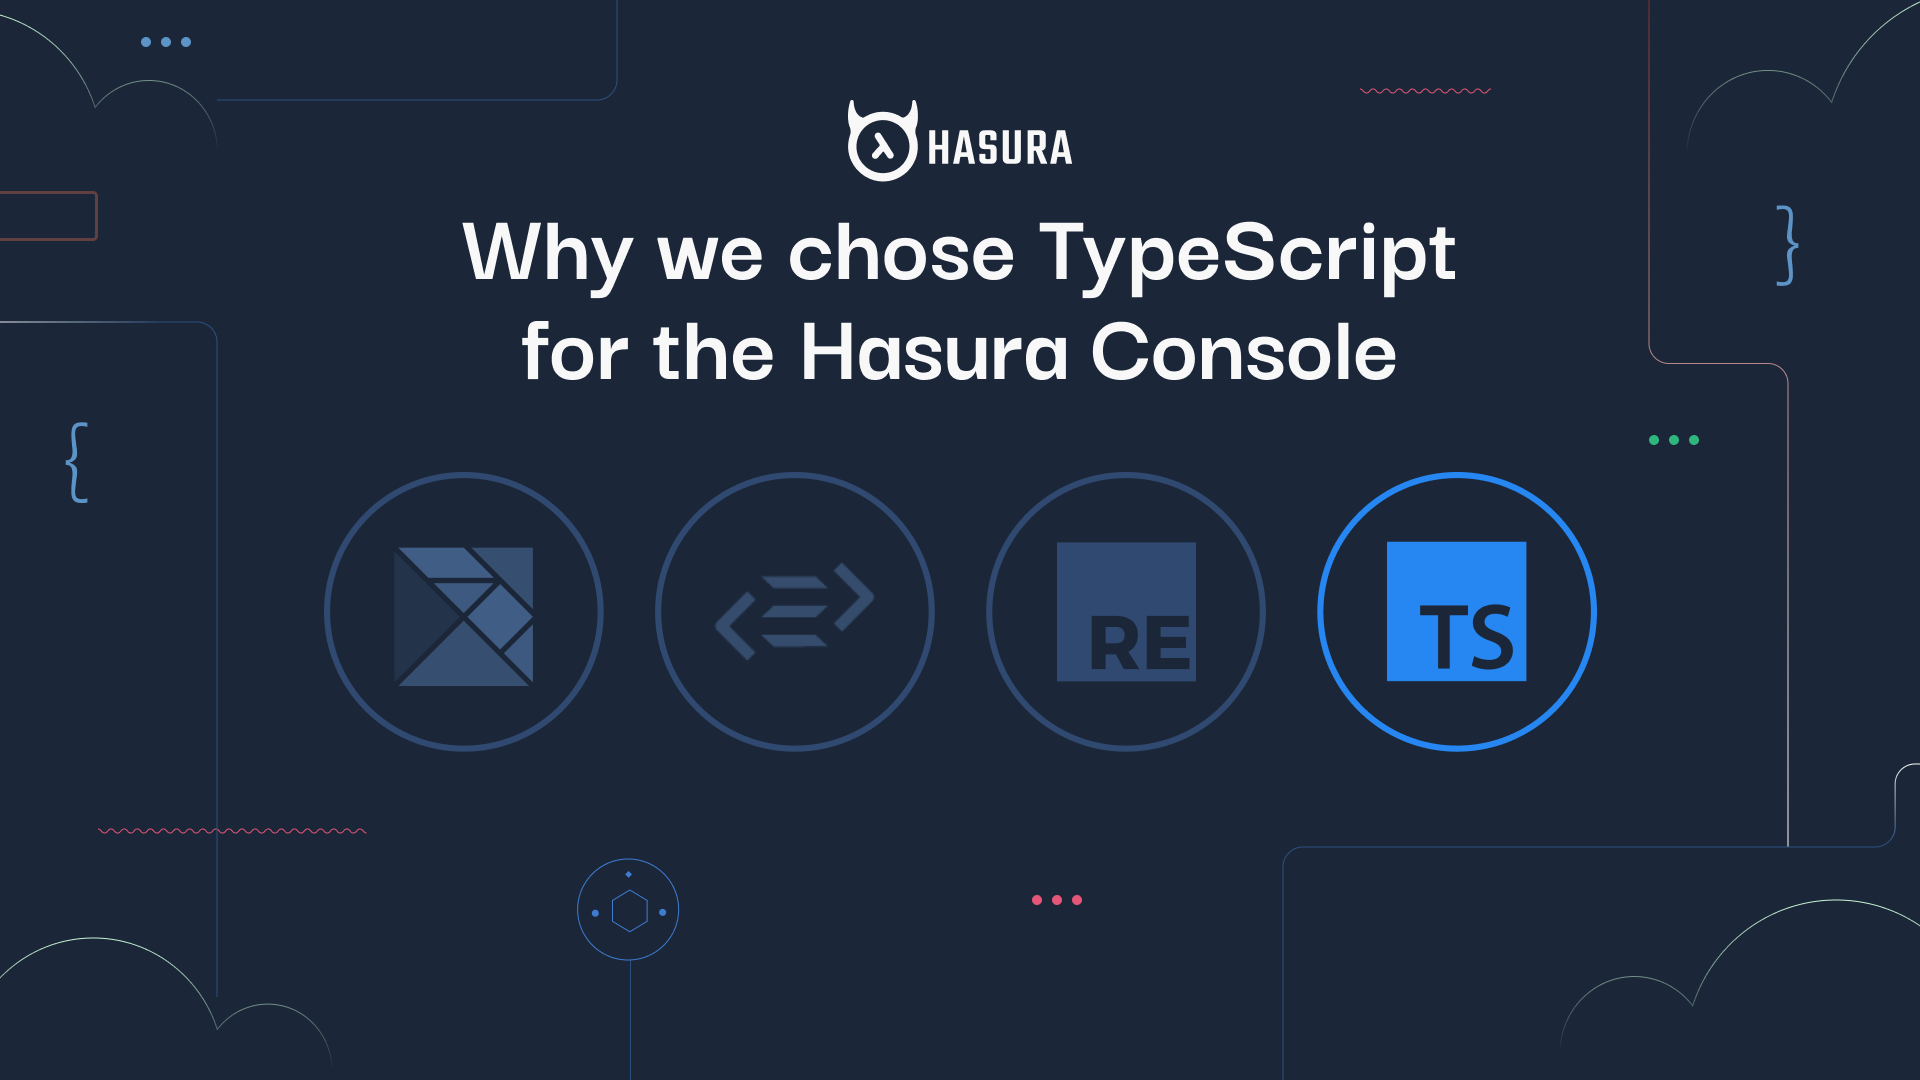 Why we chose TypeScript for the Hasura Console